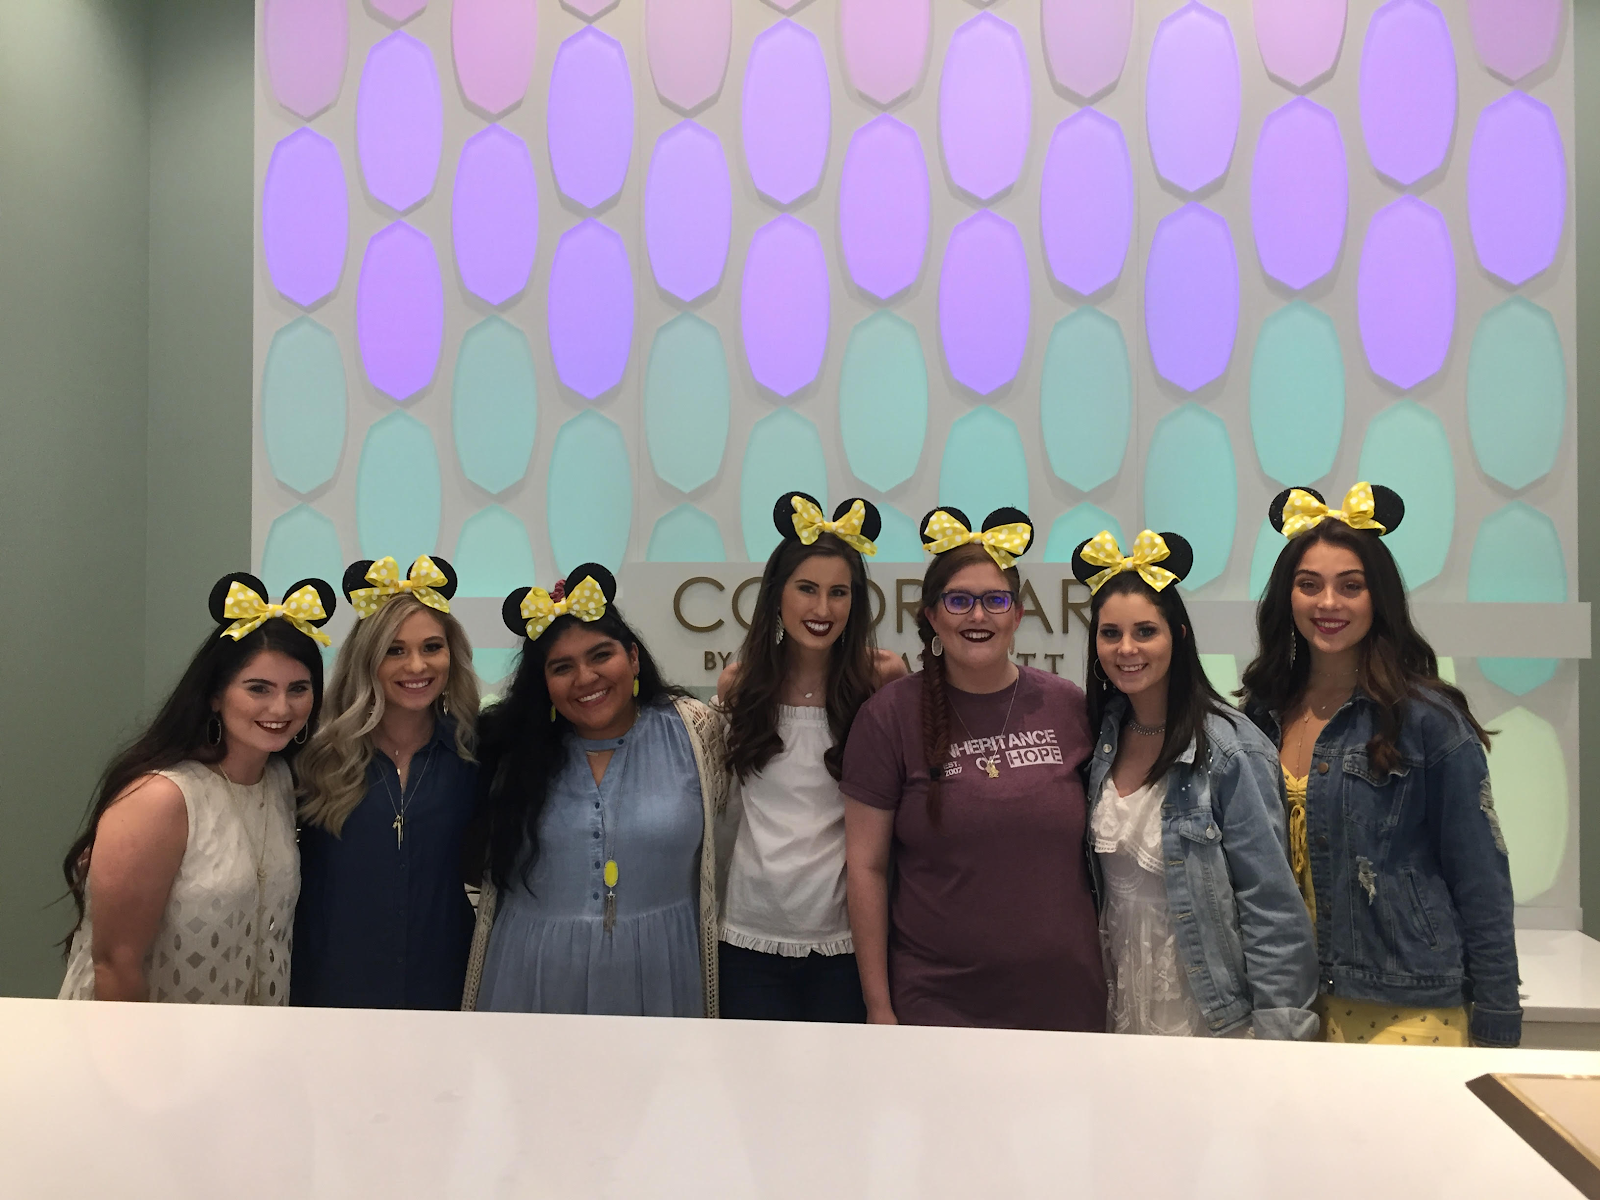 Casie (center-right in IoH shirt) celebrating Holley Day with staff at the Kendra Scott Shops at La Cantera location